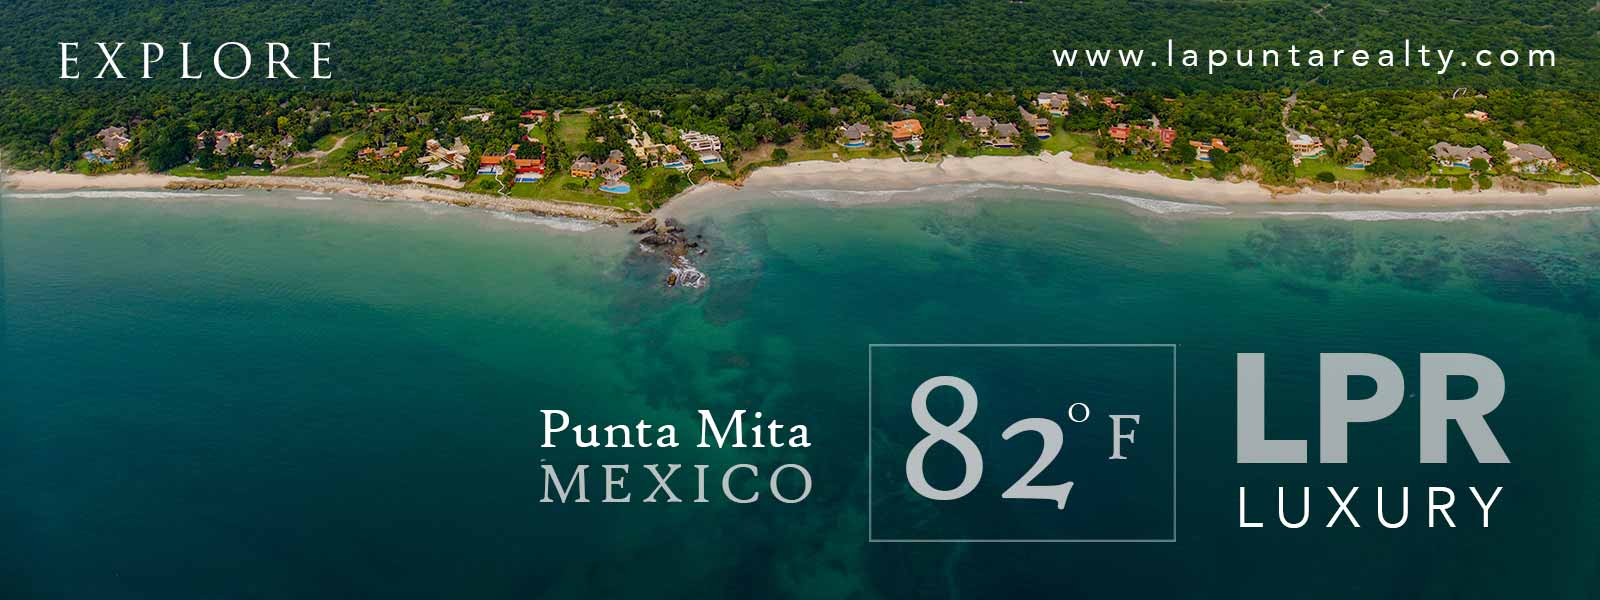 The Villas of Ranchos Punta Mita - Luxury Punta Mita Real Estate and Vacation Villa Rentals